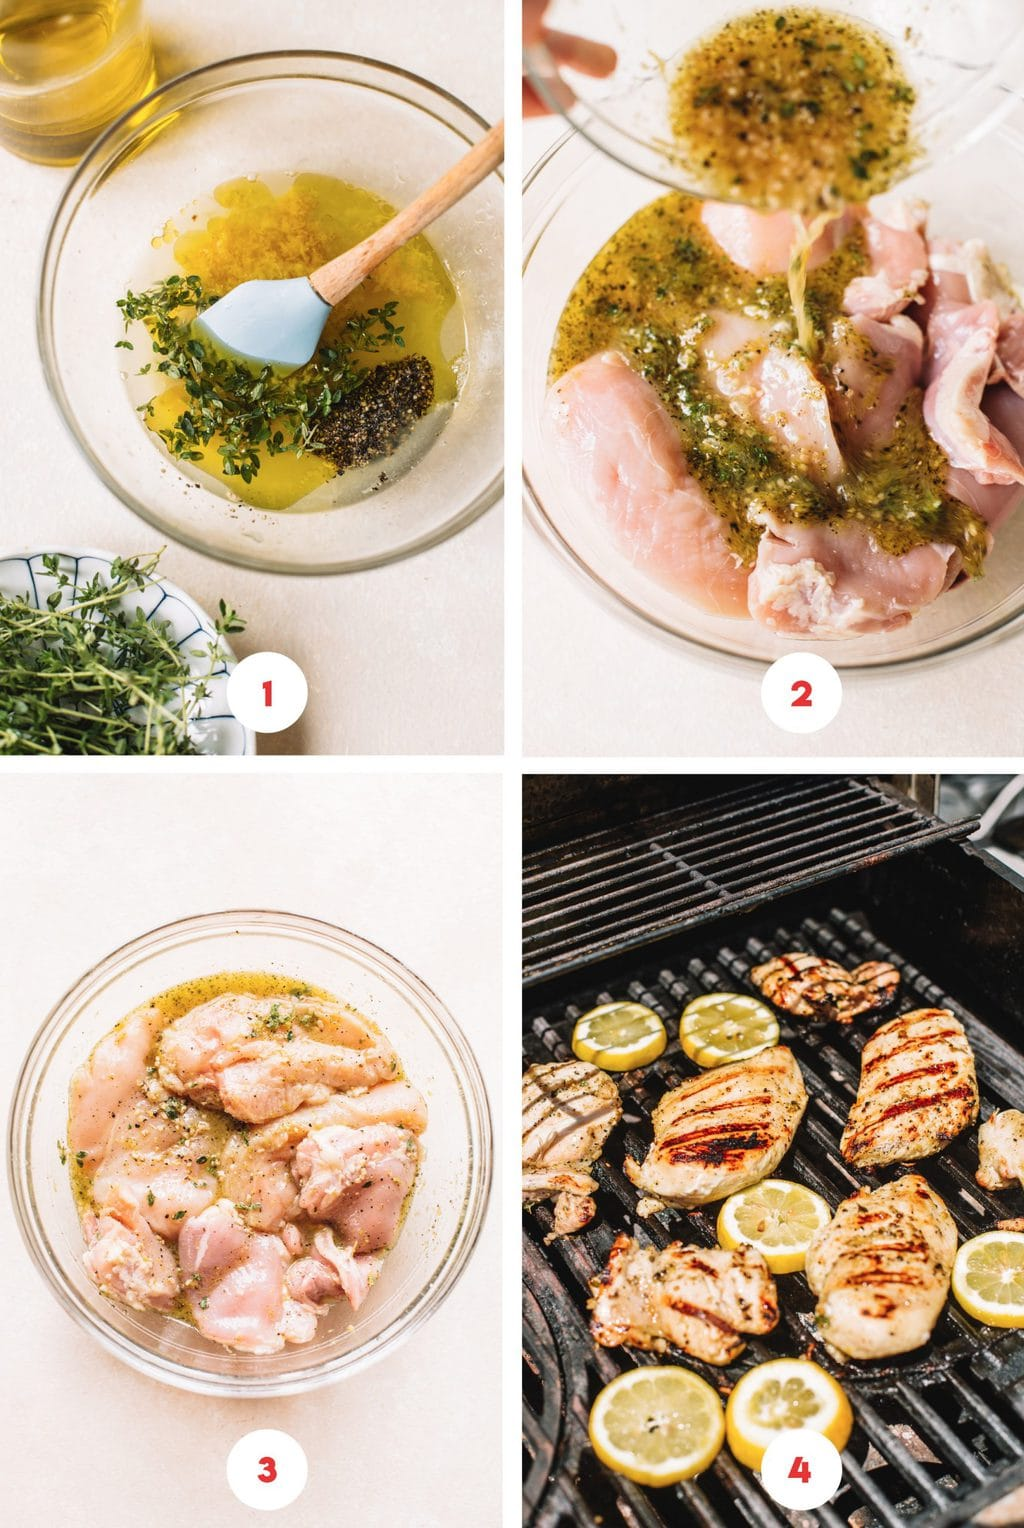 mixing lemon marinade in glass bowl, marinating chicken in bowl, grilling chicken breasts on outdoor grill